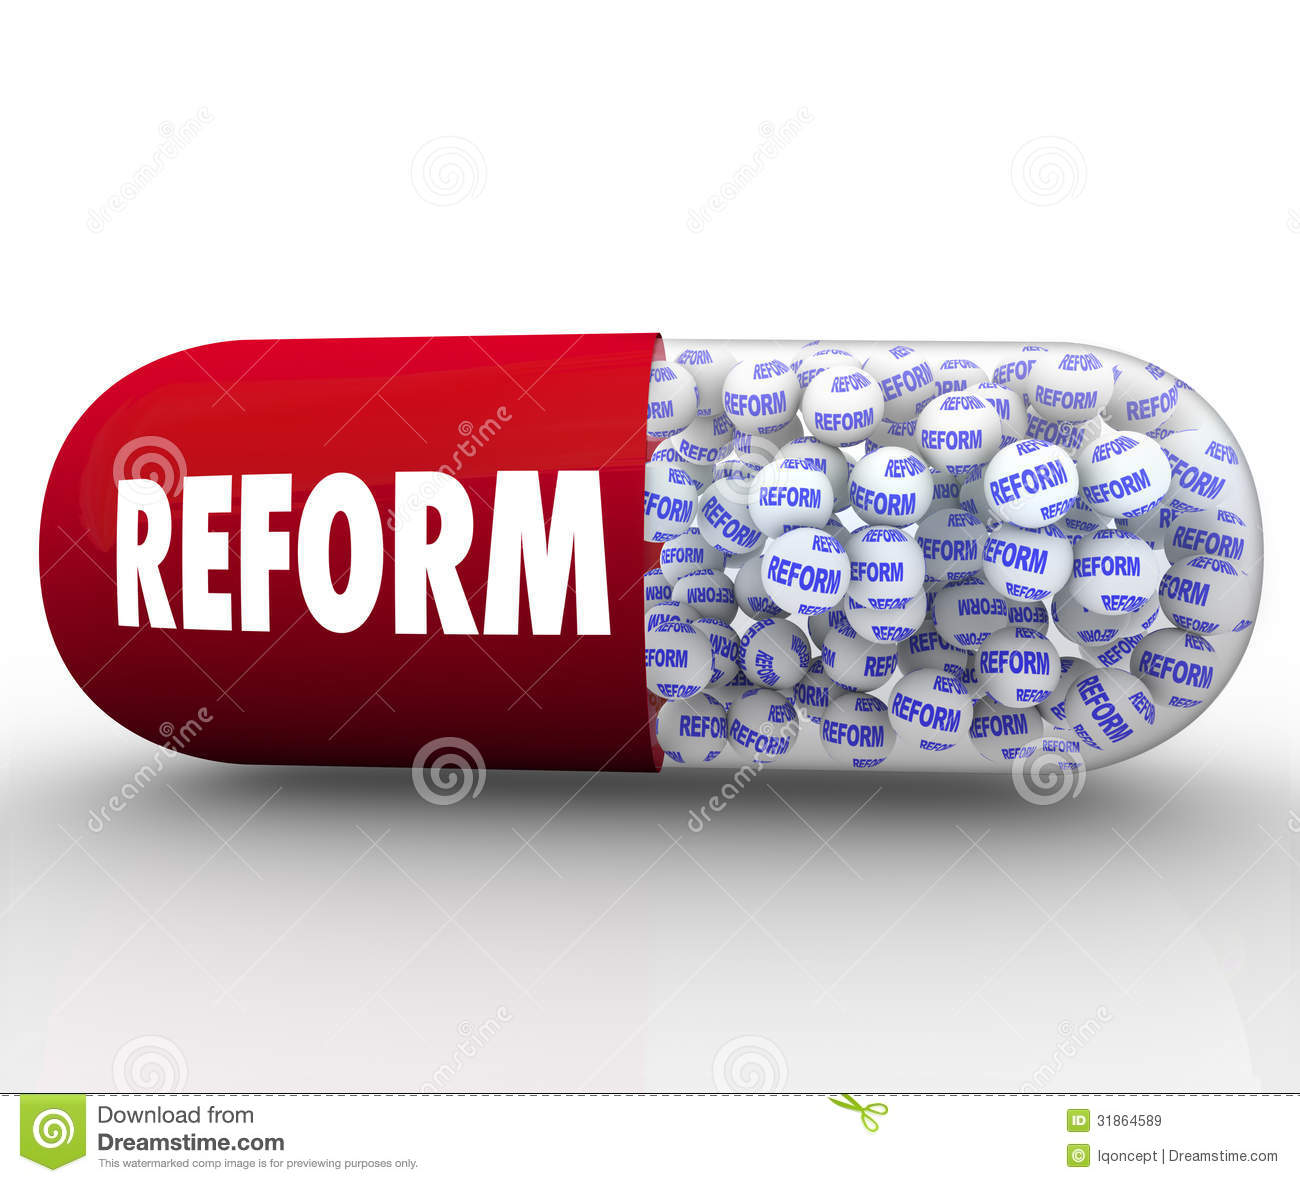 how might healthcare reform increase productivity in the united states How might healthcare reform increase productivity in the united states c how might healthcare reform decrease productivity in the united states a.